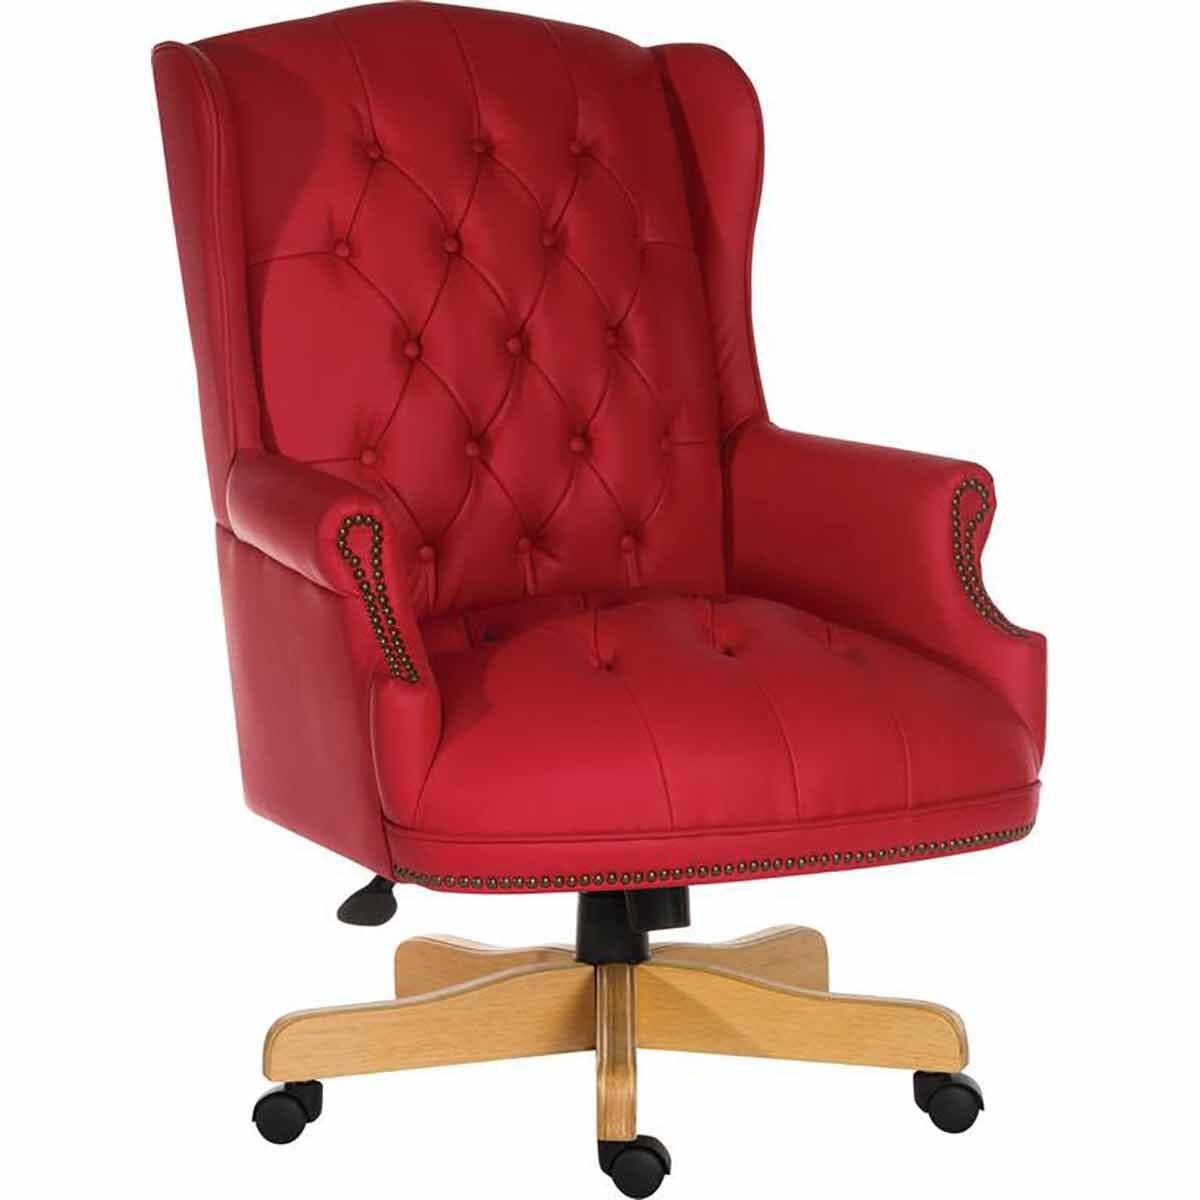 Teknik Office Chairman Swivel Executive Office Chair Red